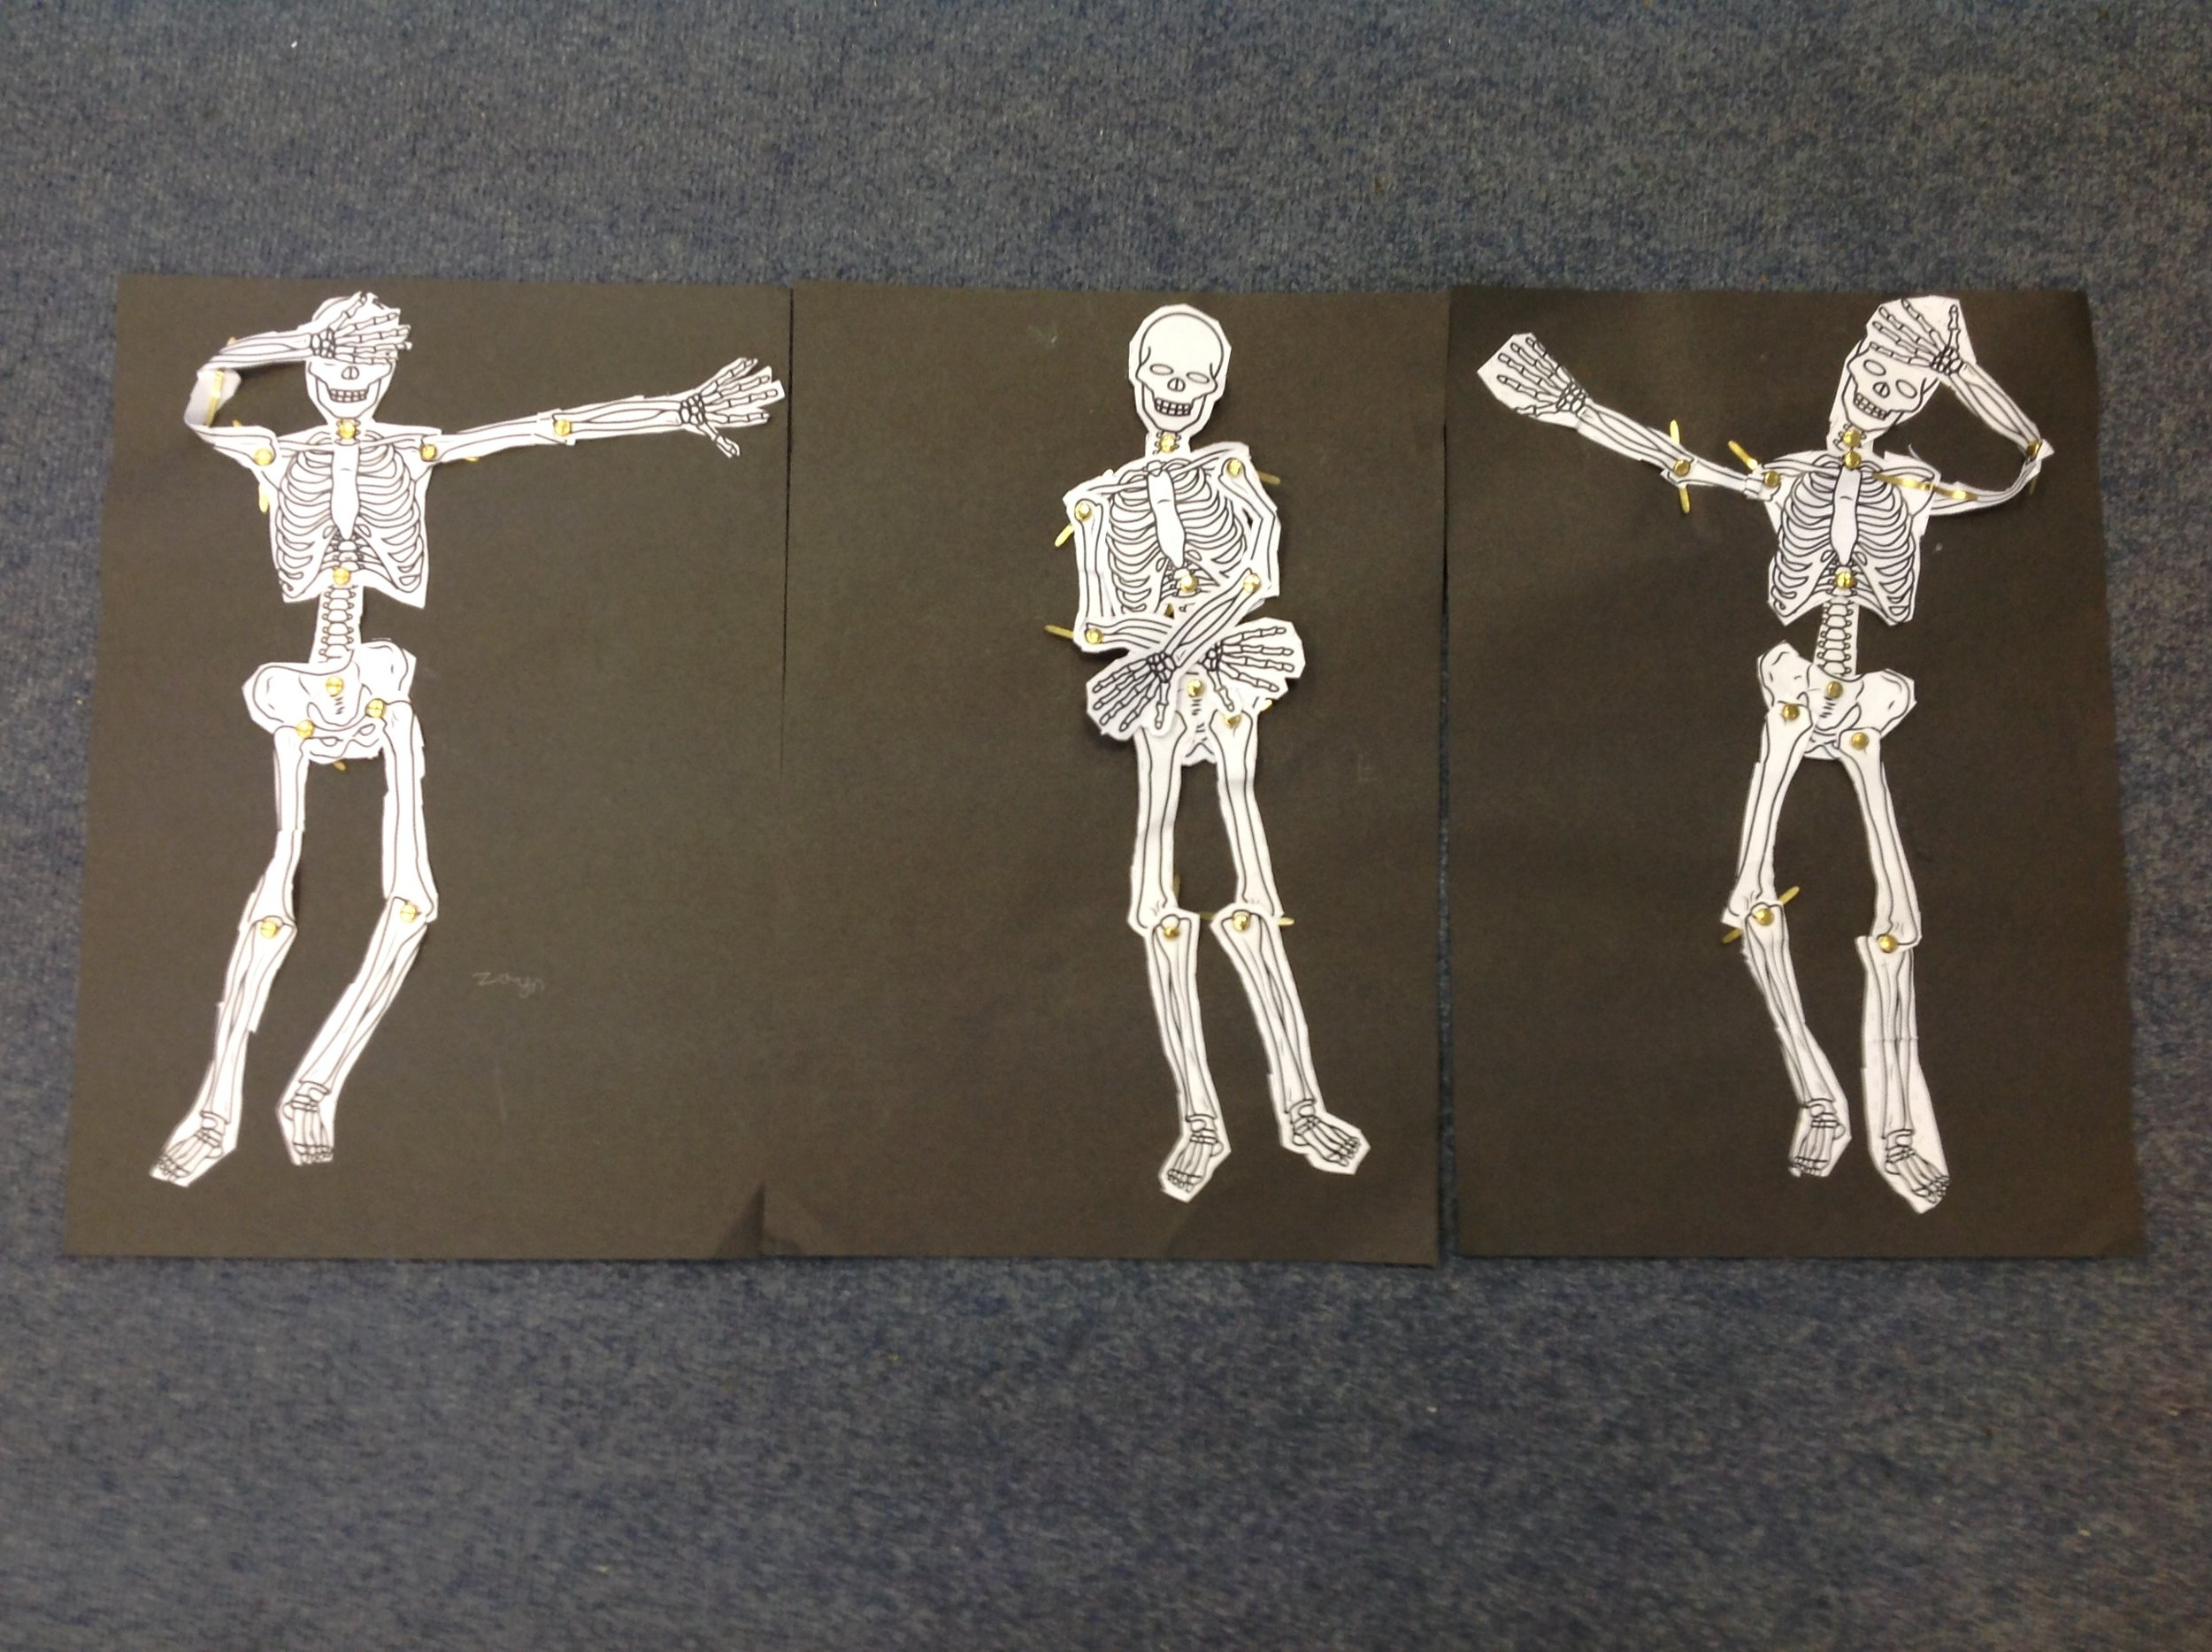 Skeletons made by Ed, Xavier and Zayn